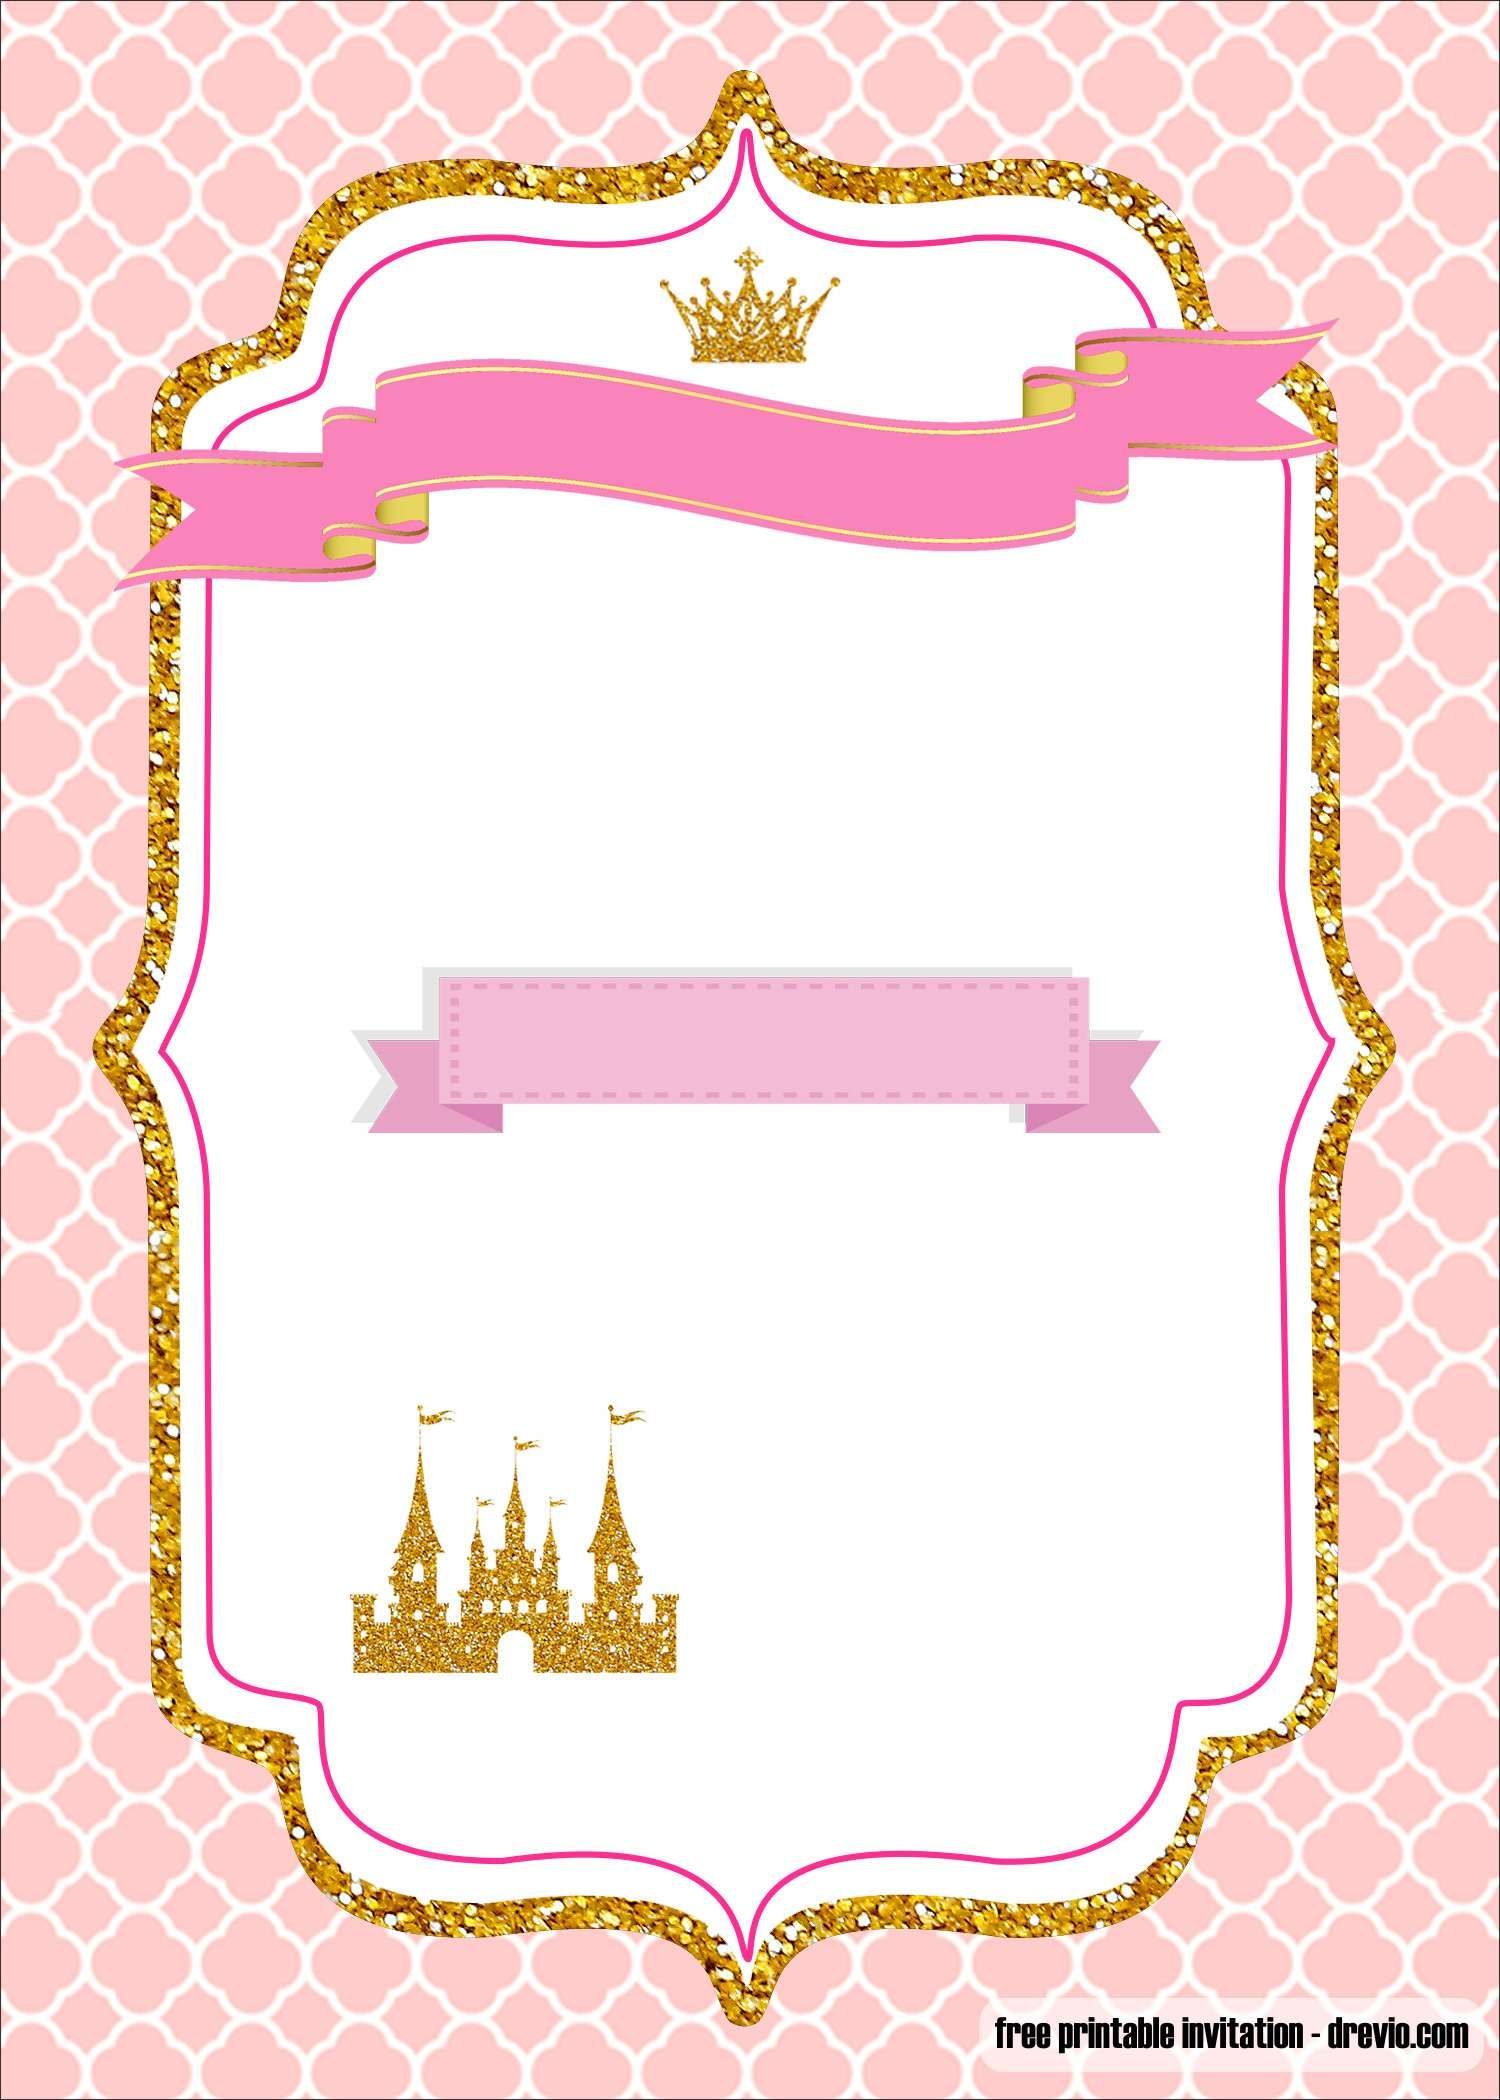 Free Printable Royal Princess Party Invitation Templates Drevio Princess Party Invitations Princess Invitations Princess Birthday Party Invitations